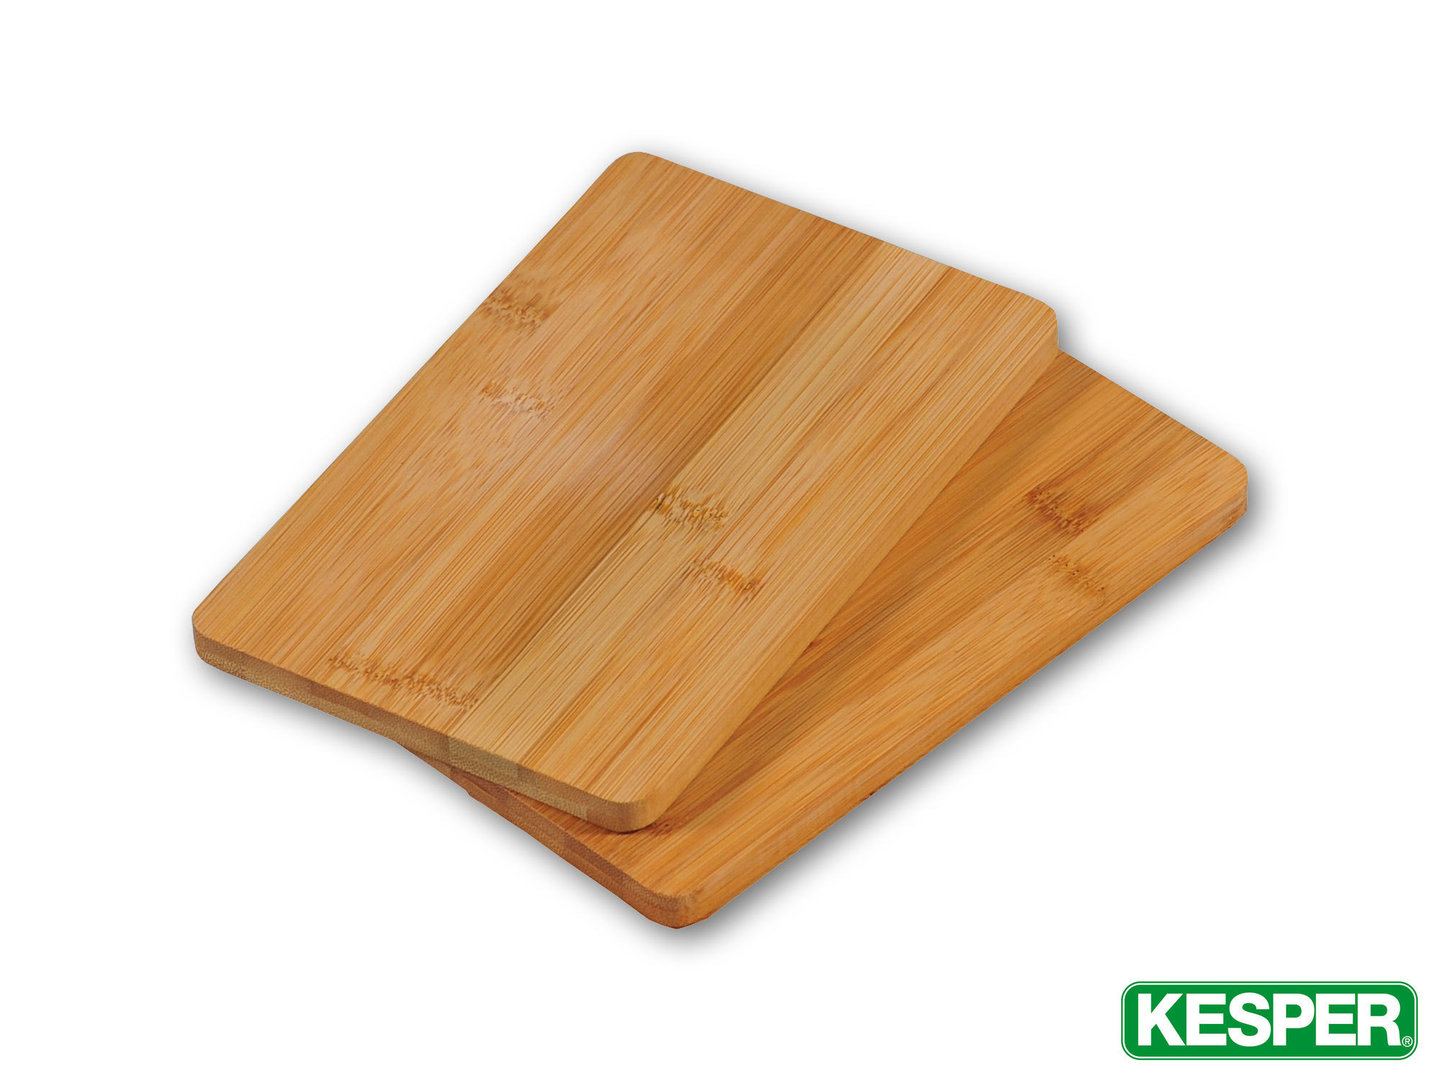 KESPER small bamboo cutting board 2pcs